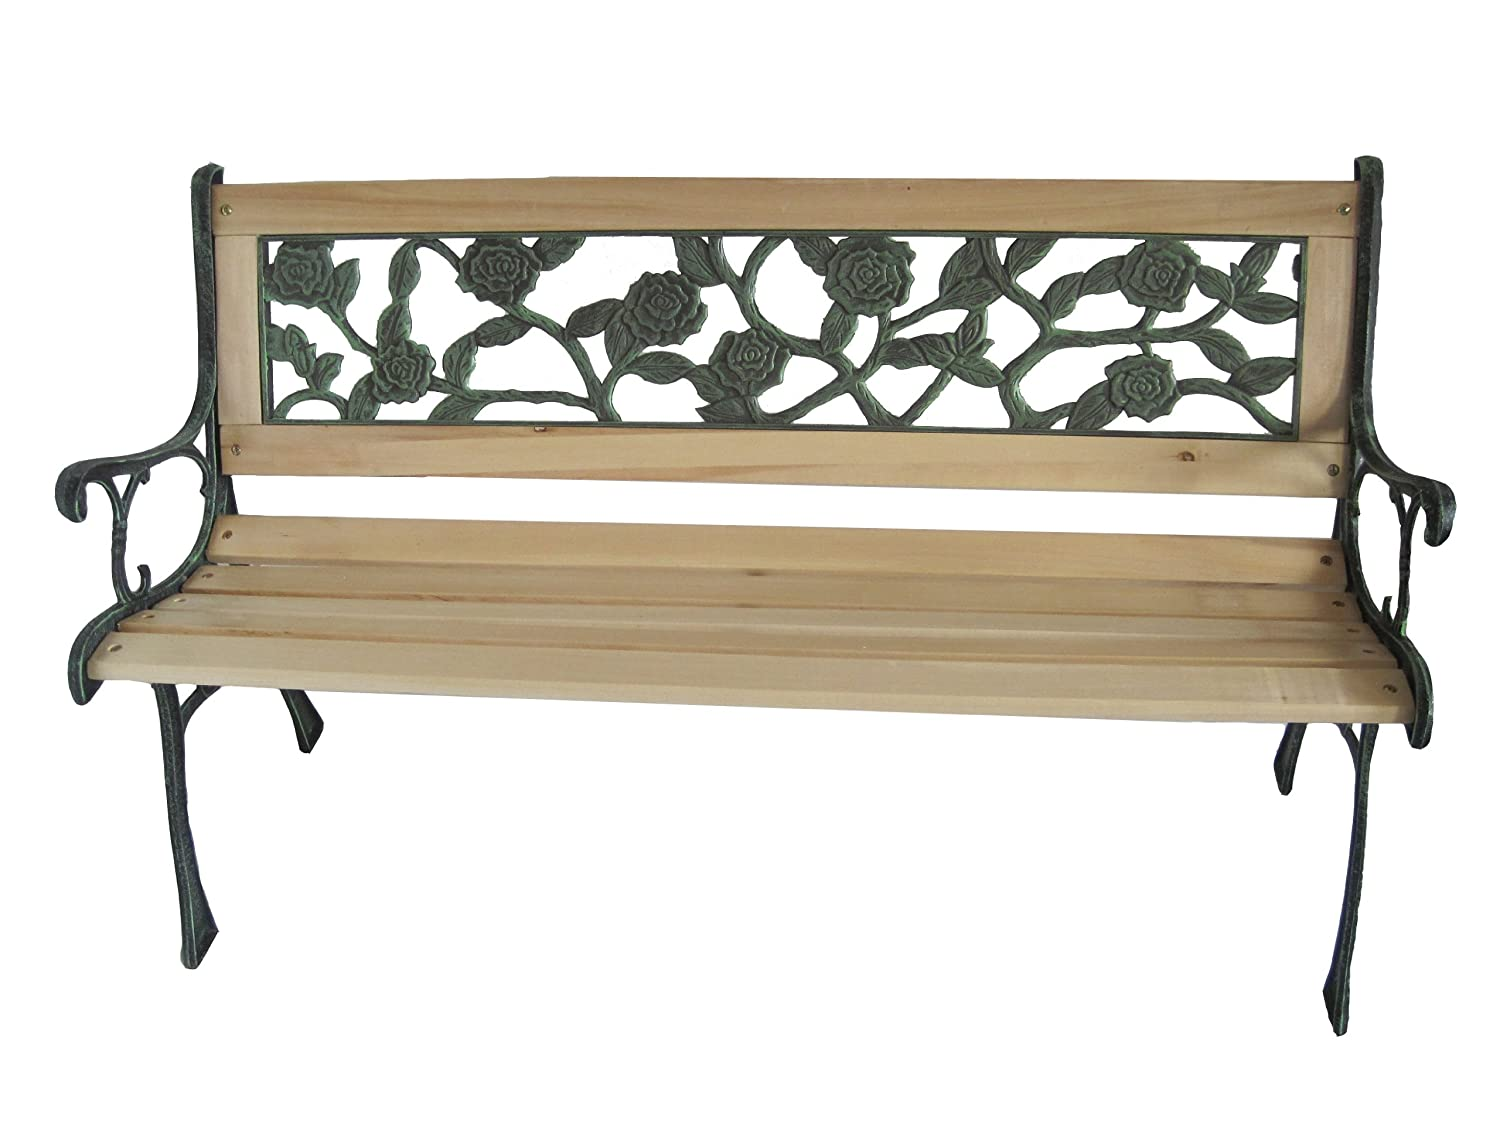 wayfair garden weatherproof outdoor reviews resin bench hearth plow ca pdp